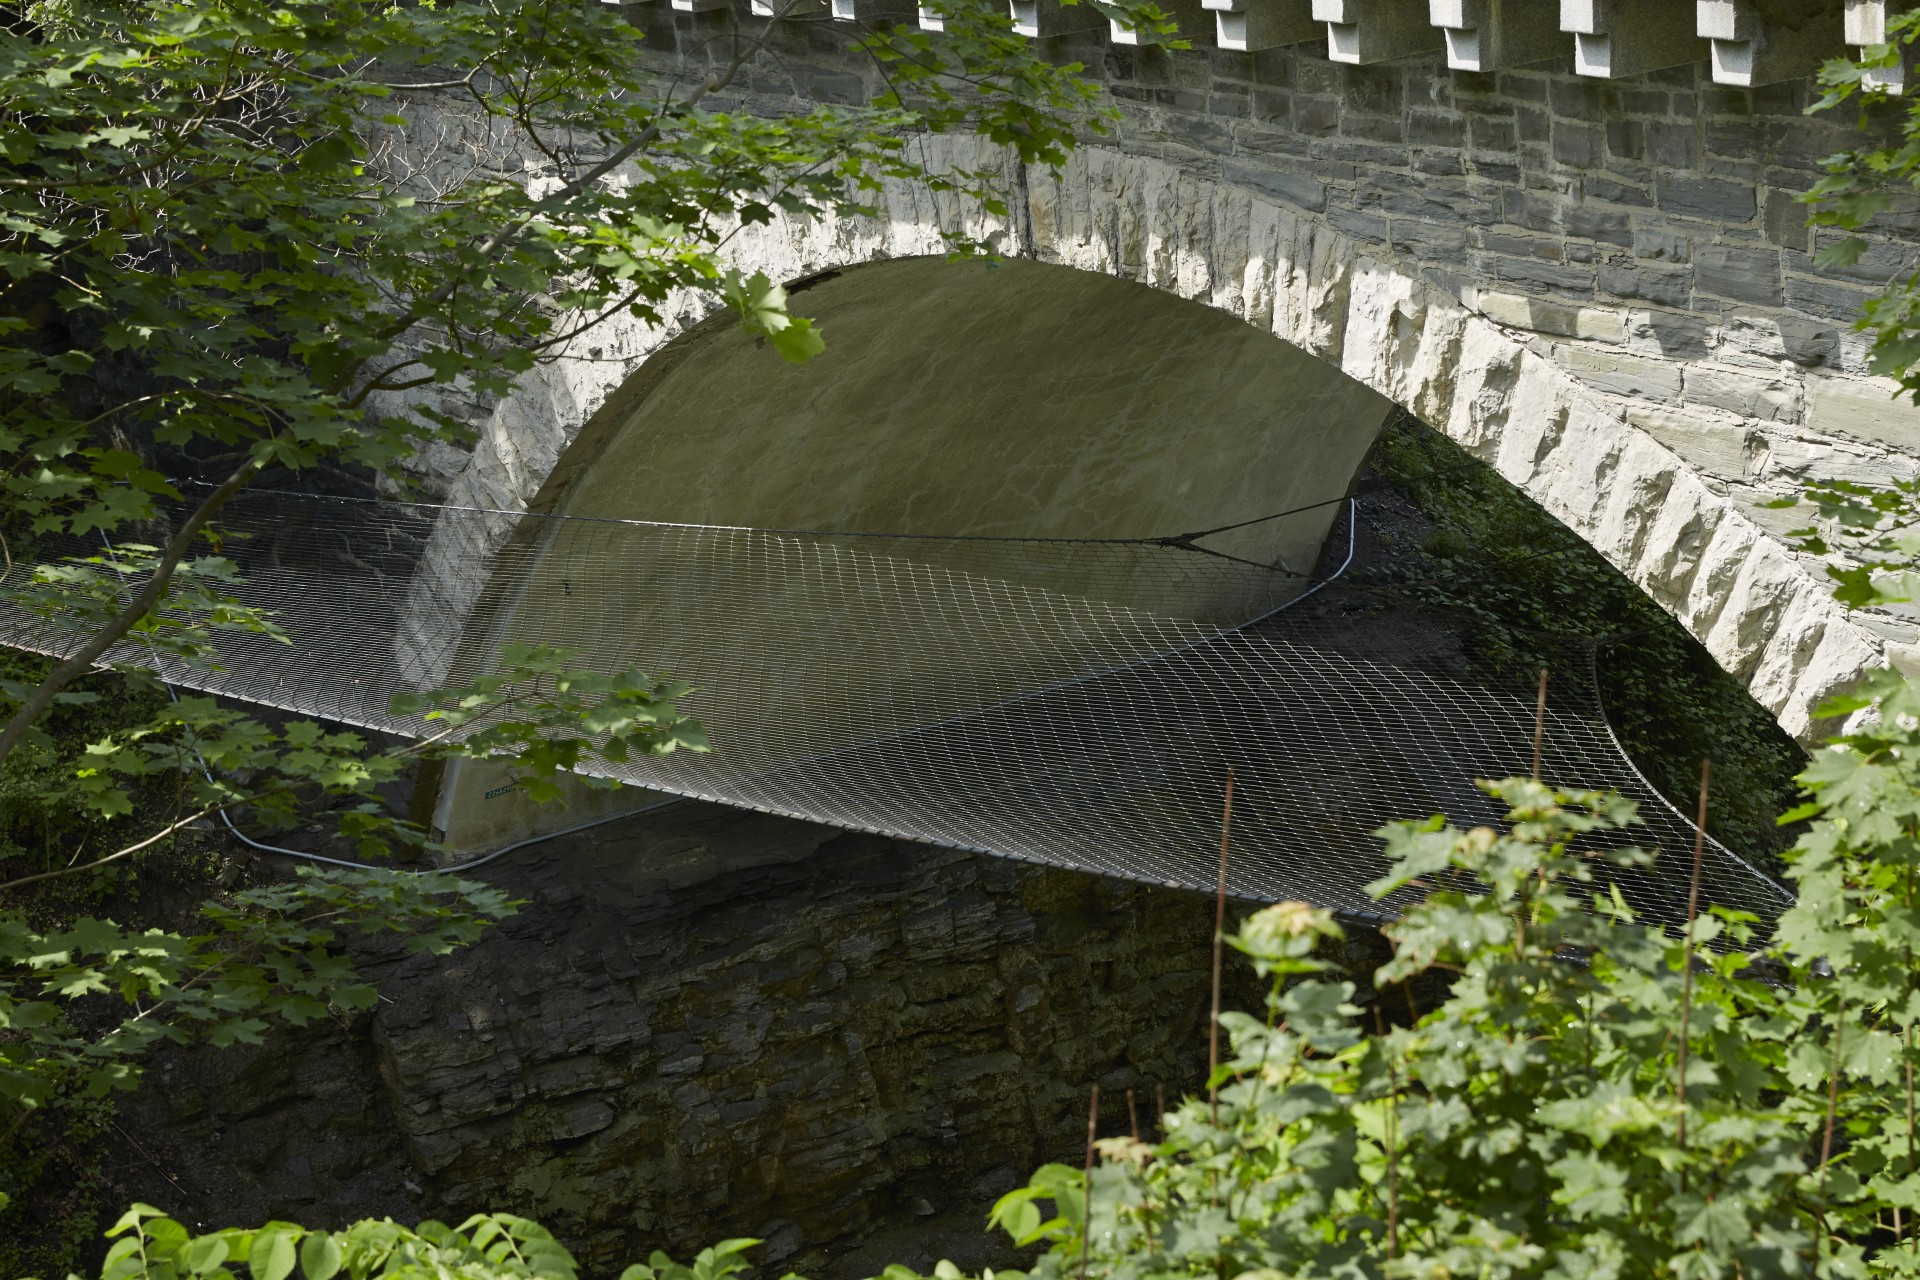 historic bridge over river with safety net